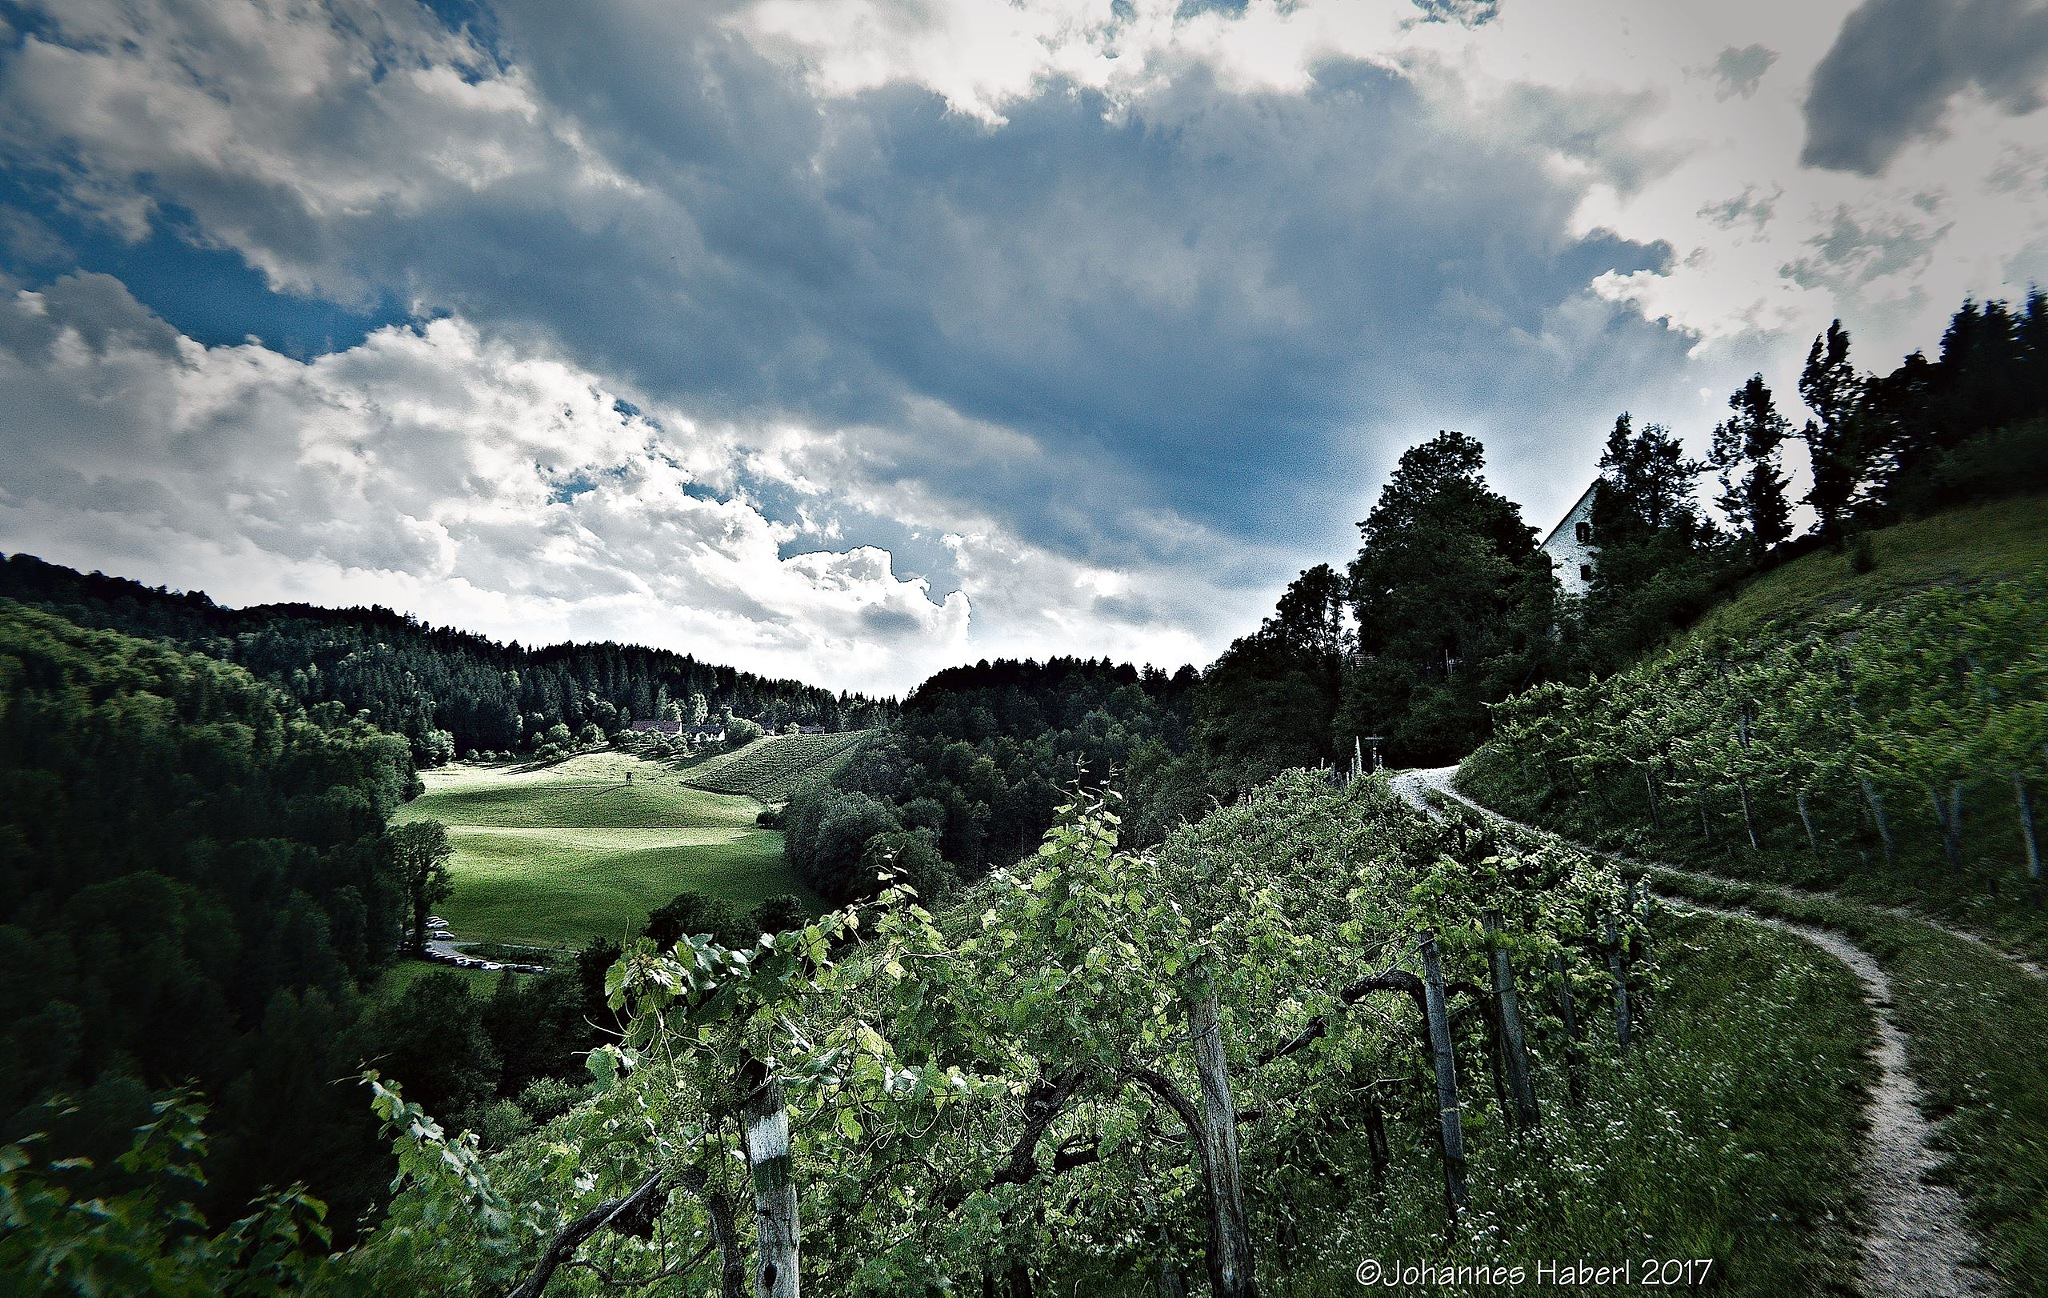 light & shadows - way back, trough the vineyards / high contrast by Johannes Haberl